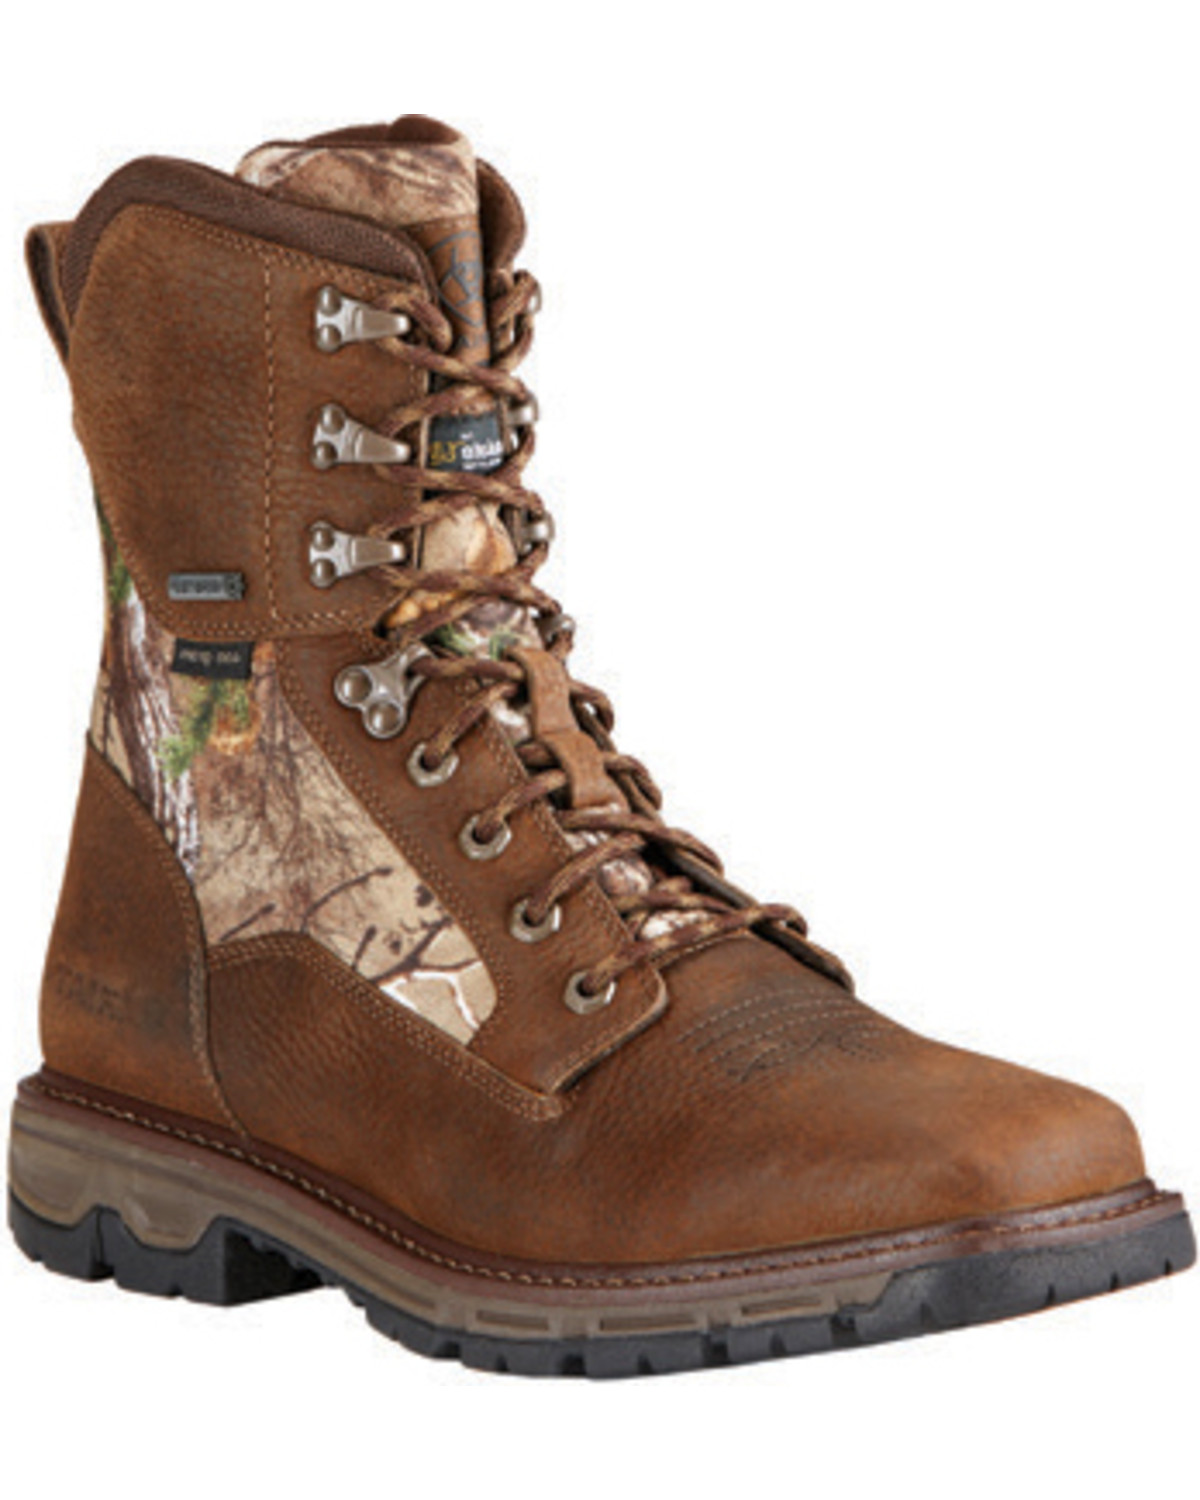 Ariat Men S Insulated Conquest Waterproof Hunting Boots